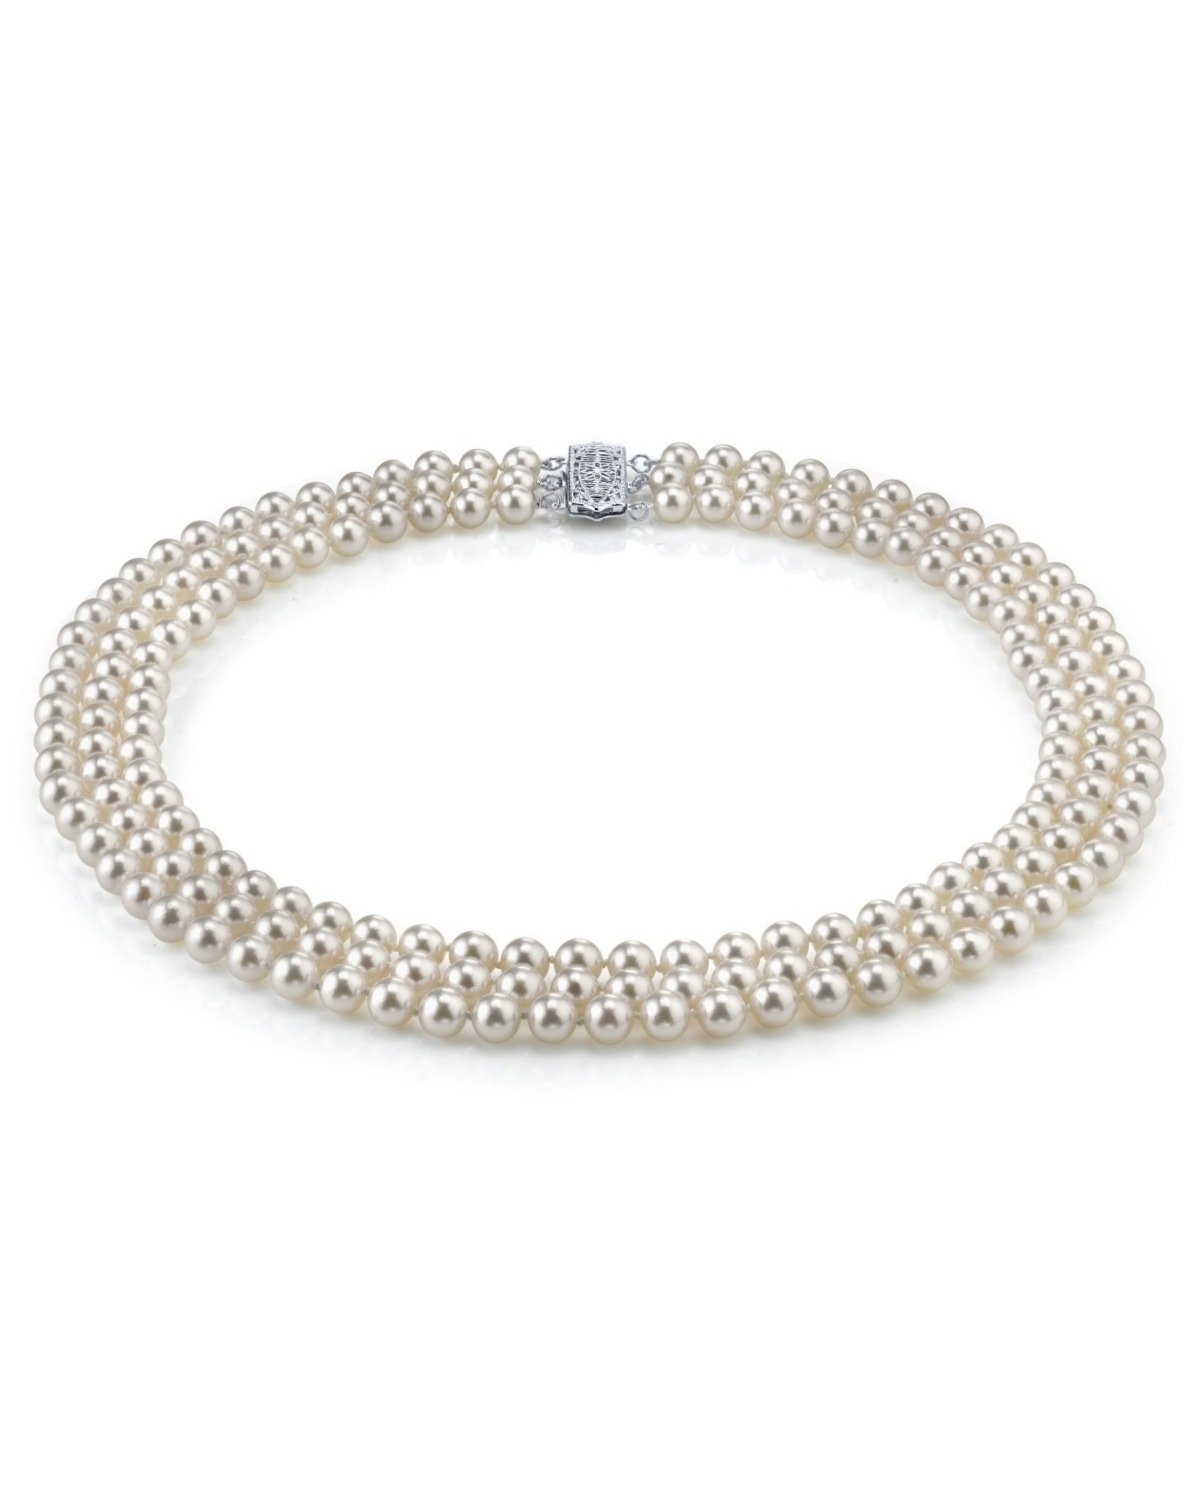 THE PEARL SOURCE 14K Gold 7-8mm AAA Quality Triple Strand White Freshwater Cultured Pearl Necklace for Women in 17-19'' Princess Length